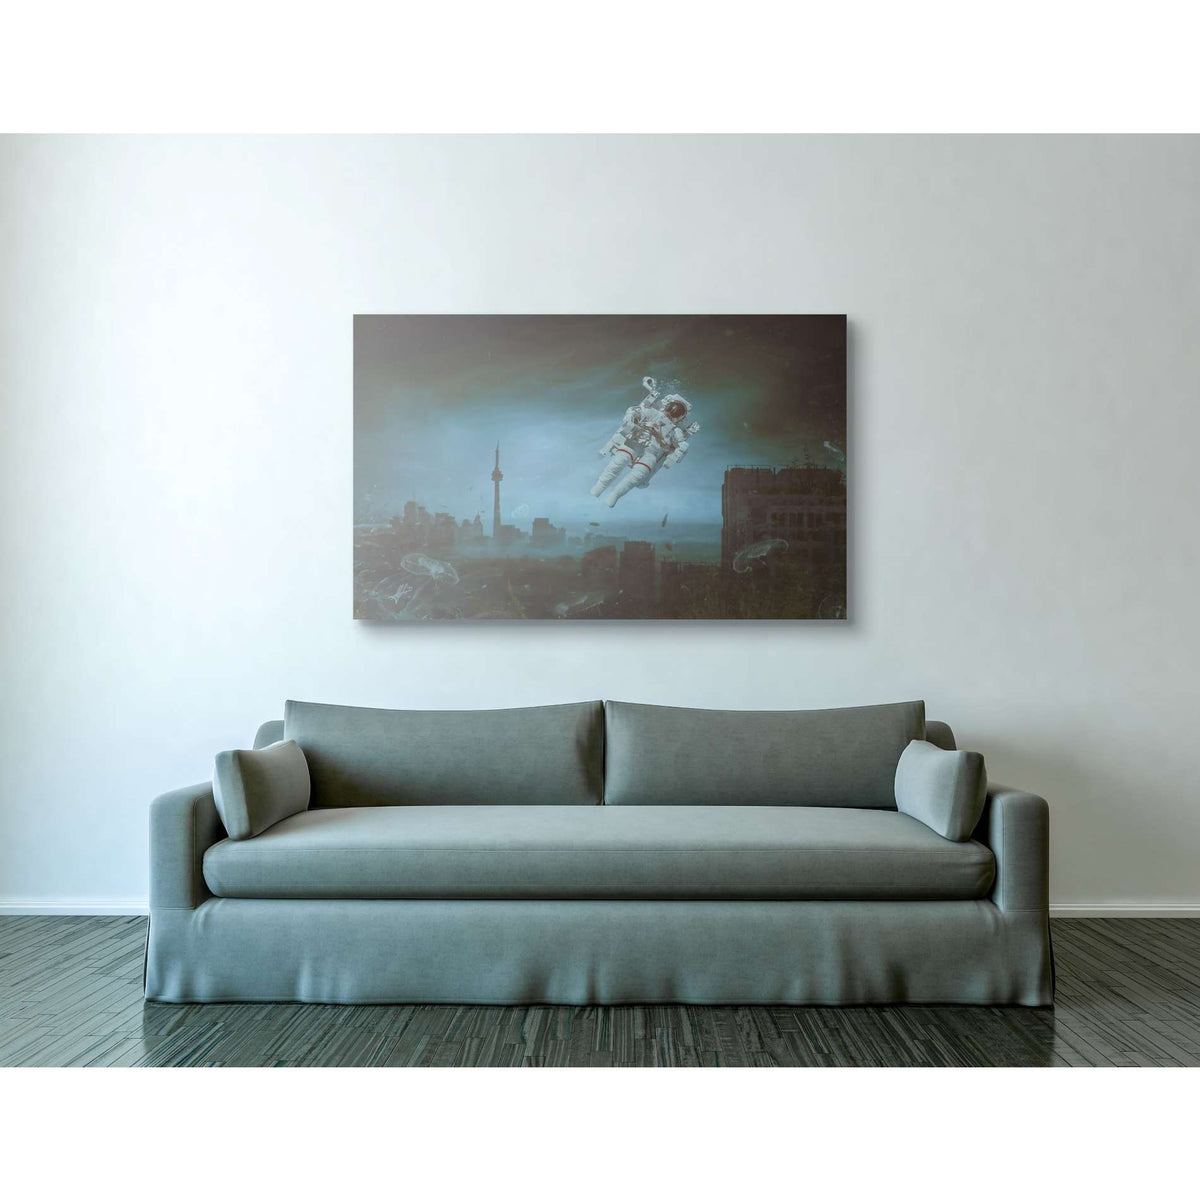 Cortesi Home 'Sometimes' by Mario Sanchez Nevado, Canvas Wall Art,40 x 60